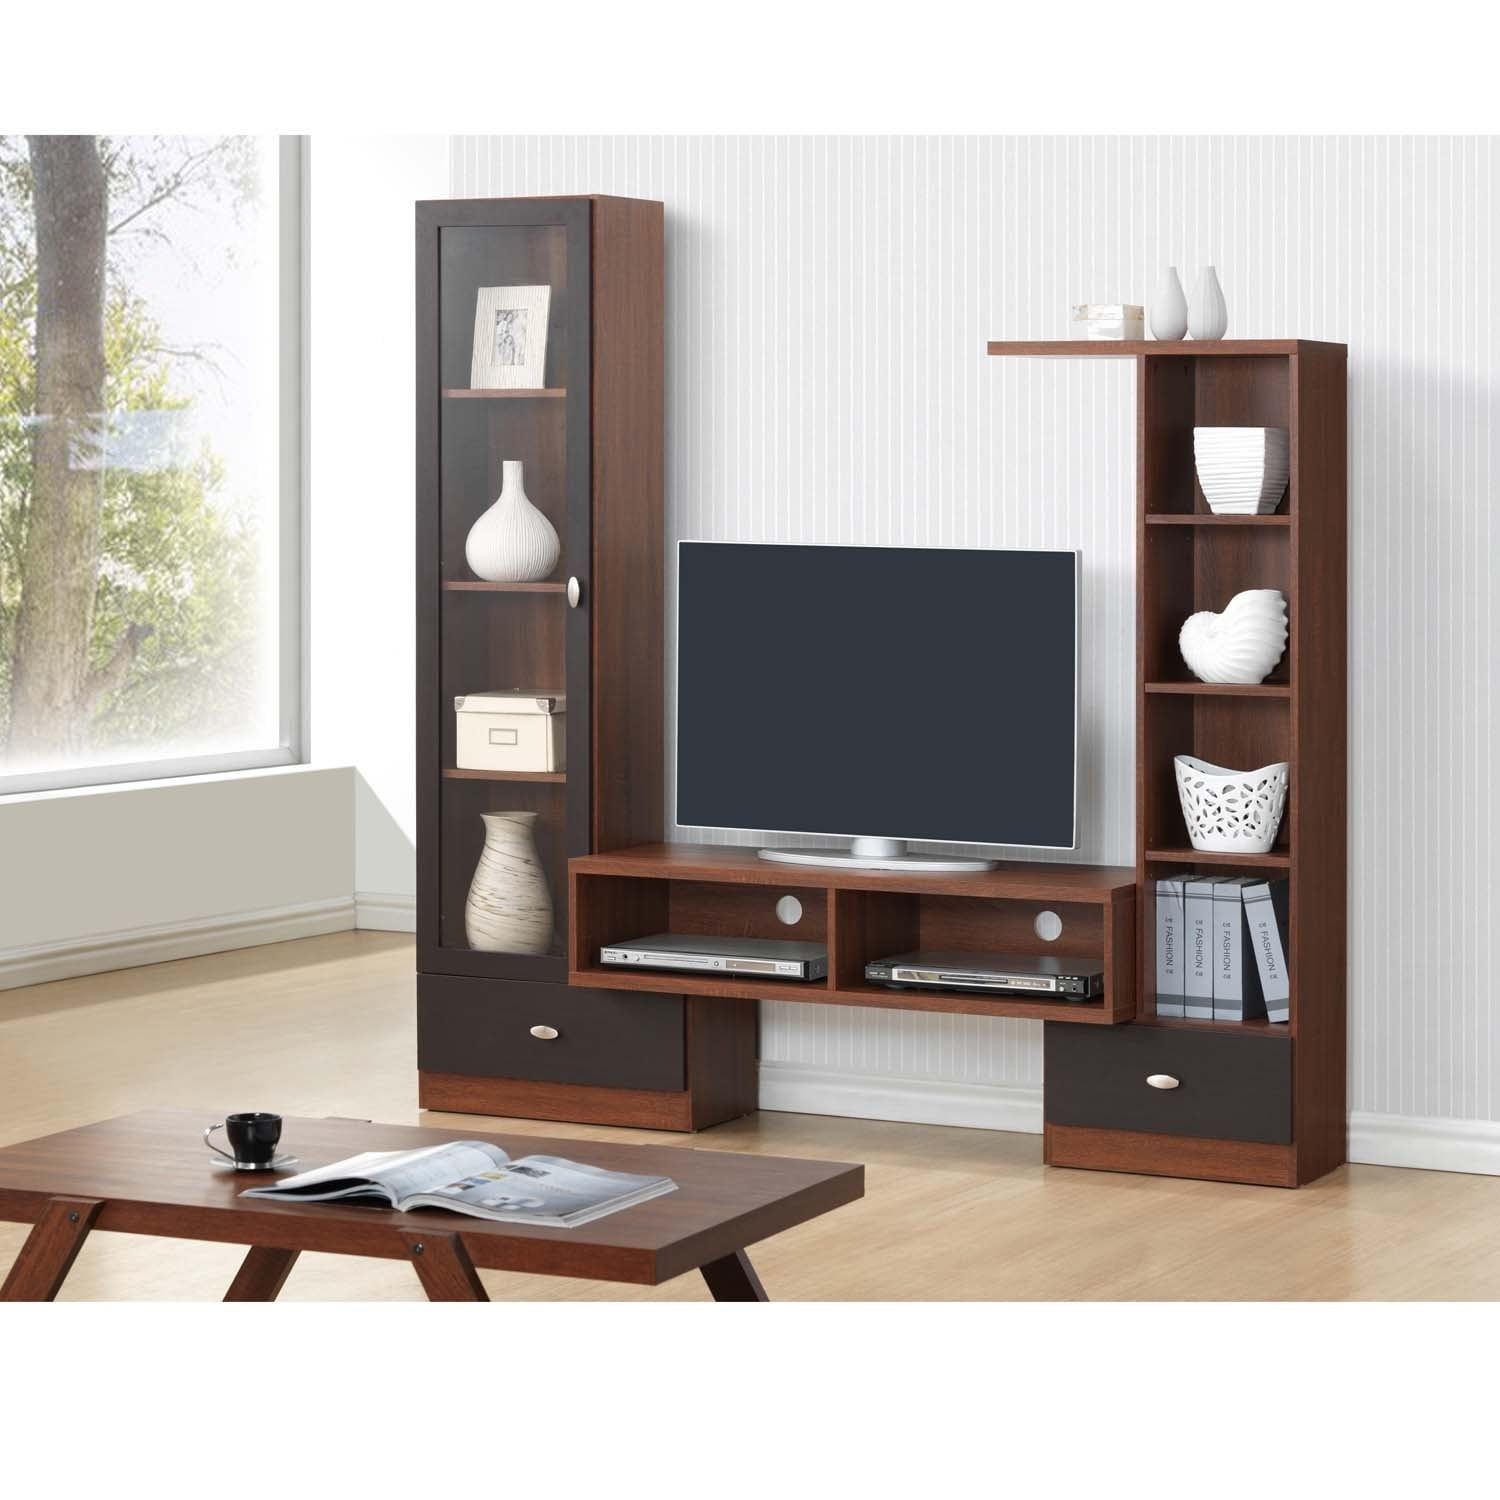 Shop Baxton Studio Empire Sonoma Oak Finishing Modern TV Stand ...